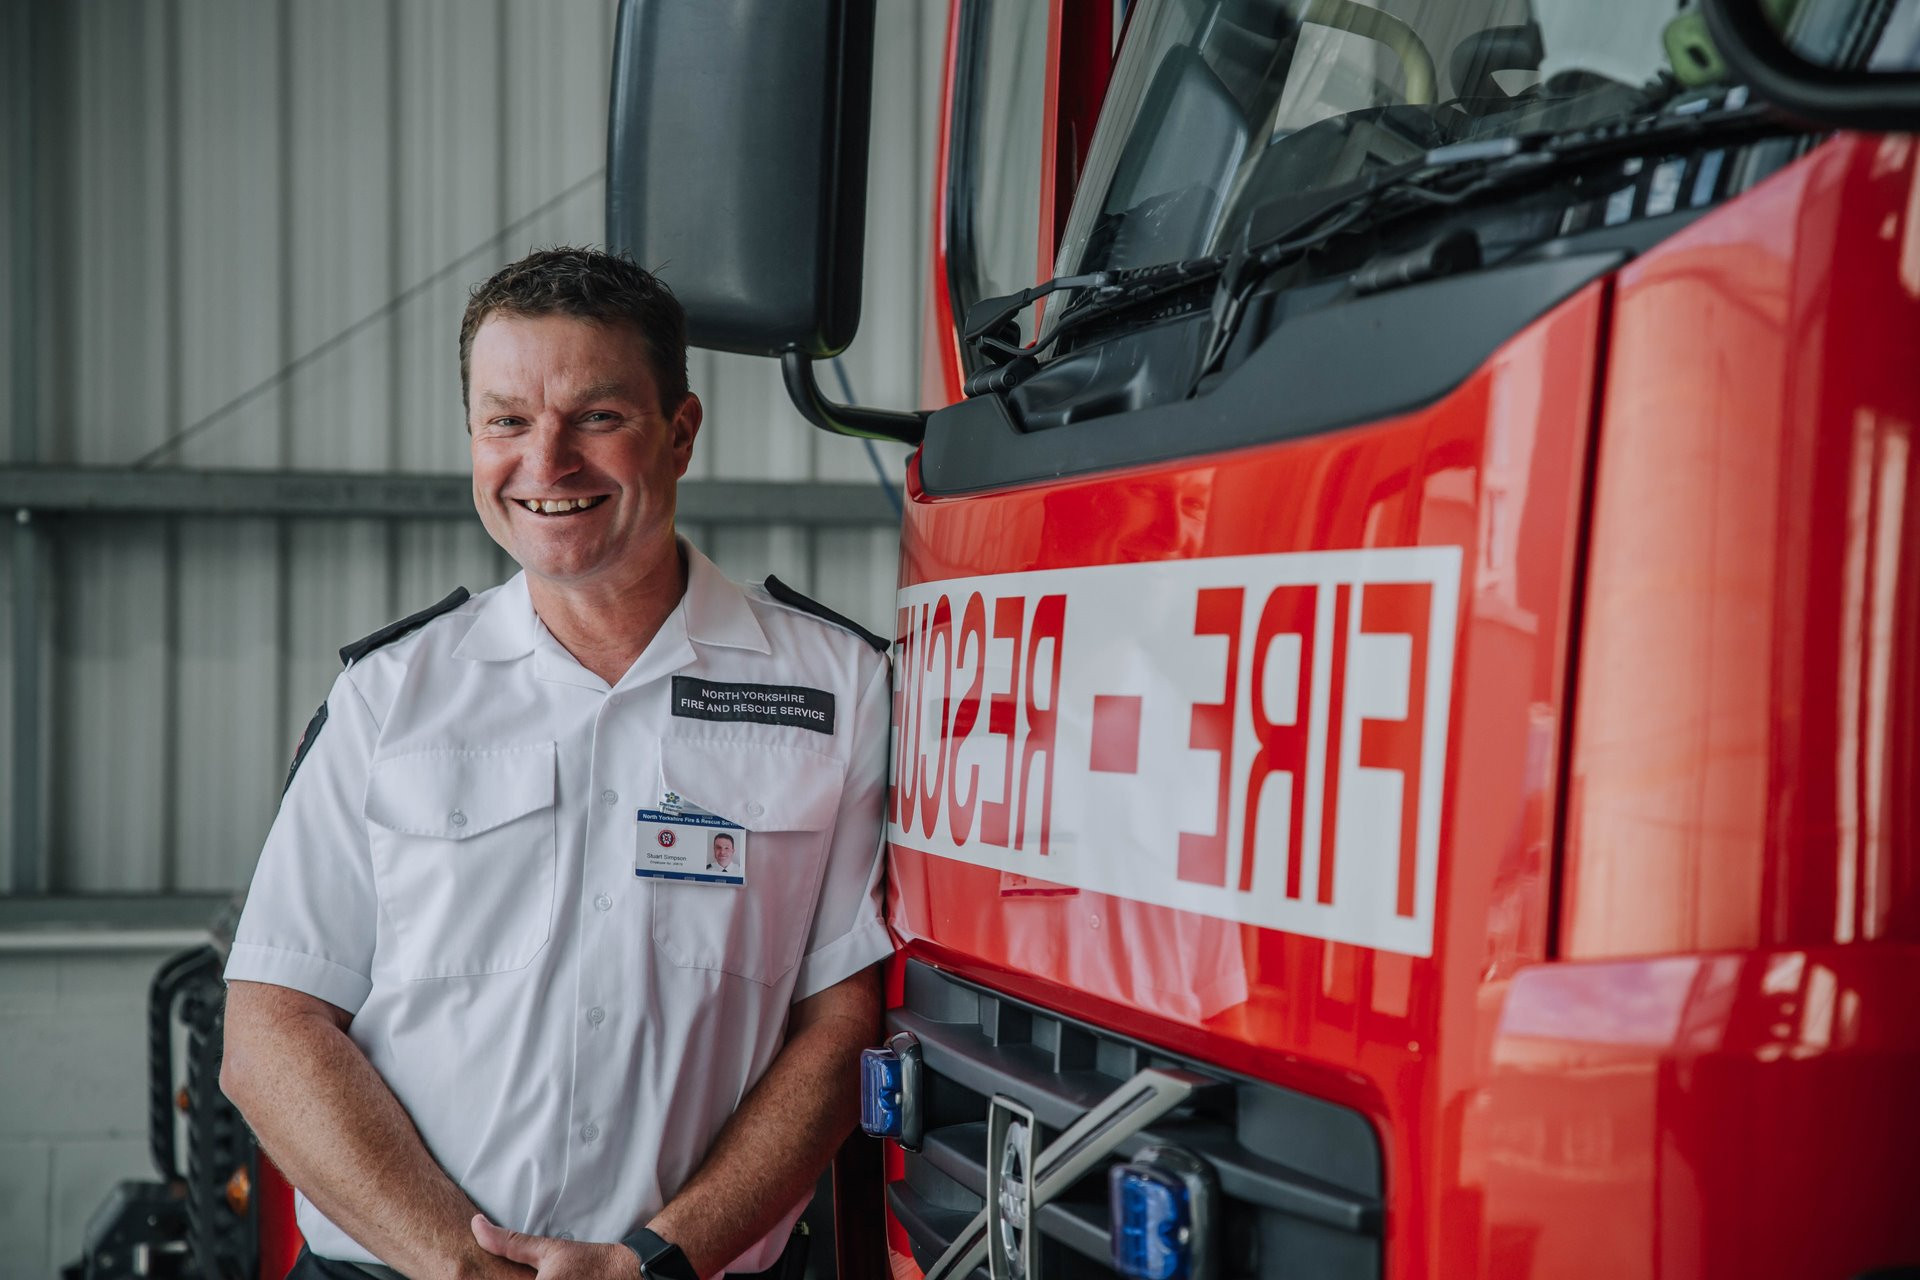 Stu Coaching Picture with Fire Engine.jp